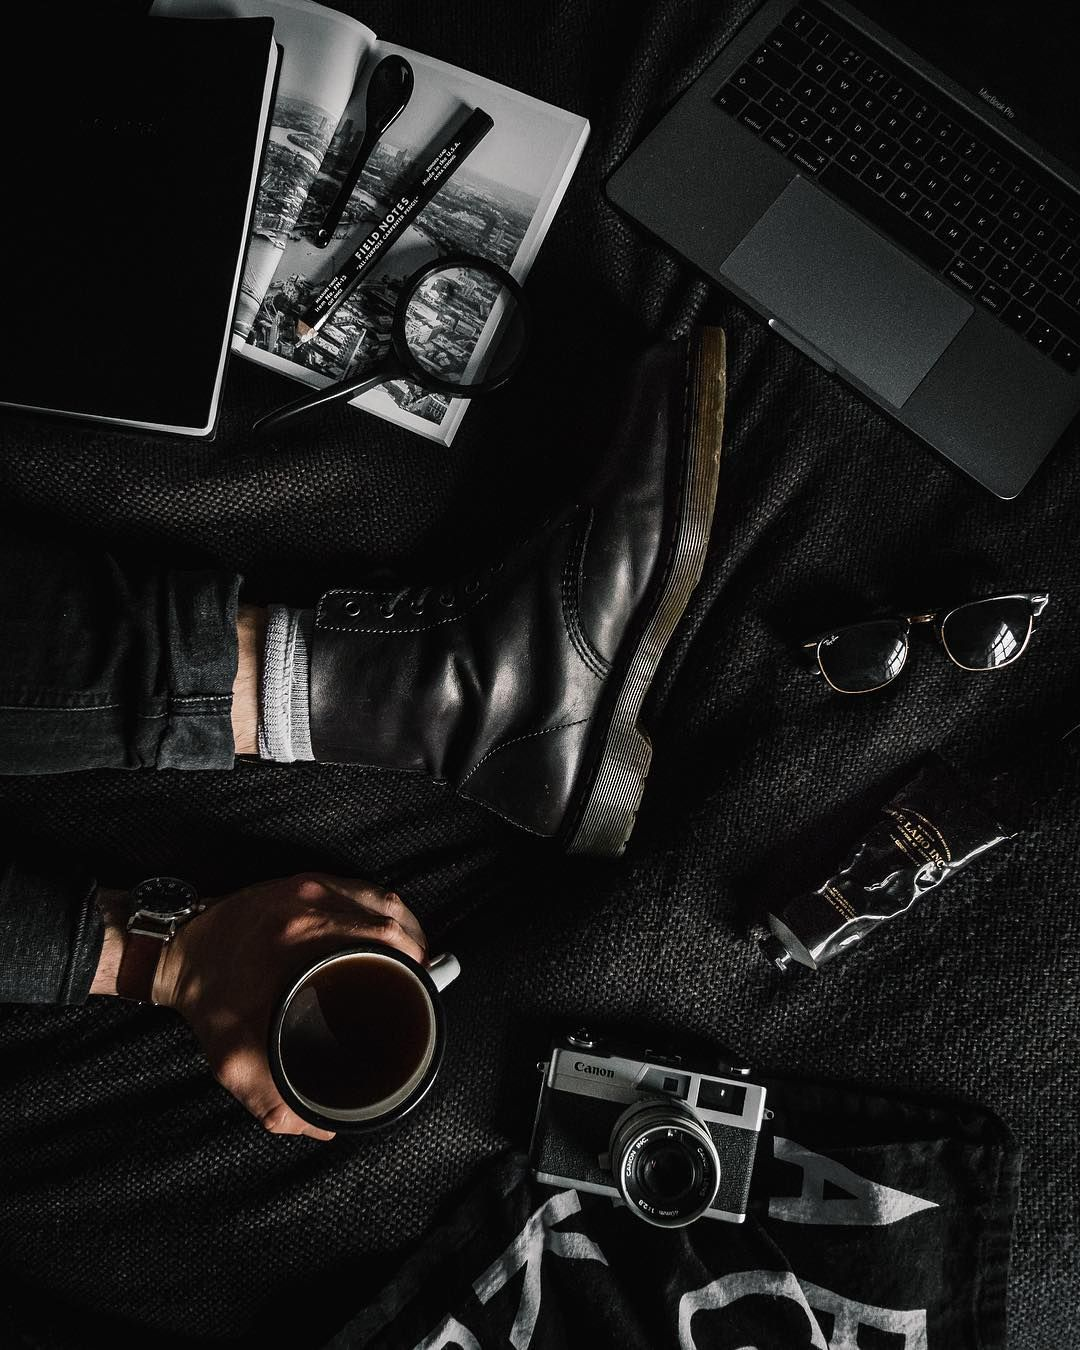 Last Of The Day Captured On Its Been A Fairly Laid Back But Caffeine Fuelled Sunday Catching Up On Lots Of Work No Black Aesthetic Flat Lay Photography Black